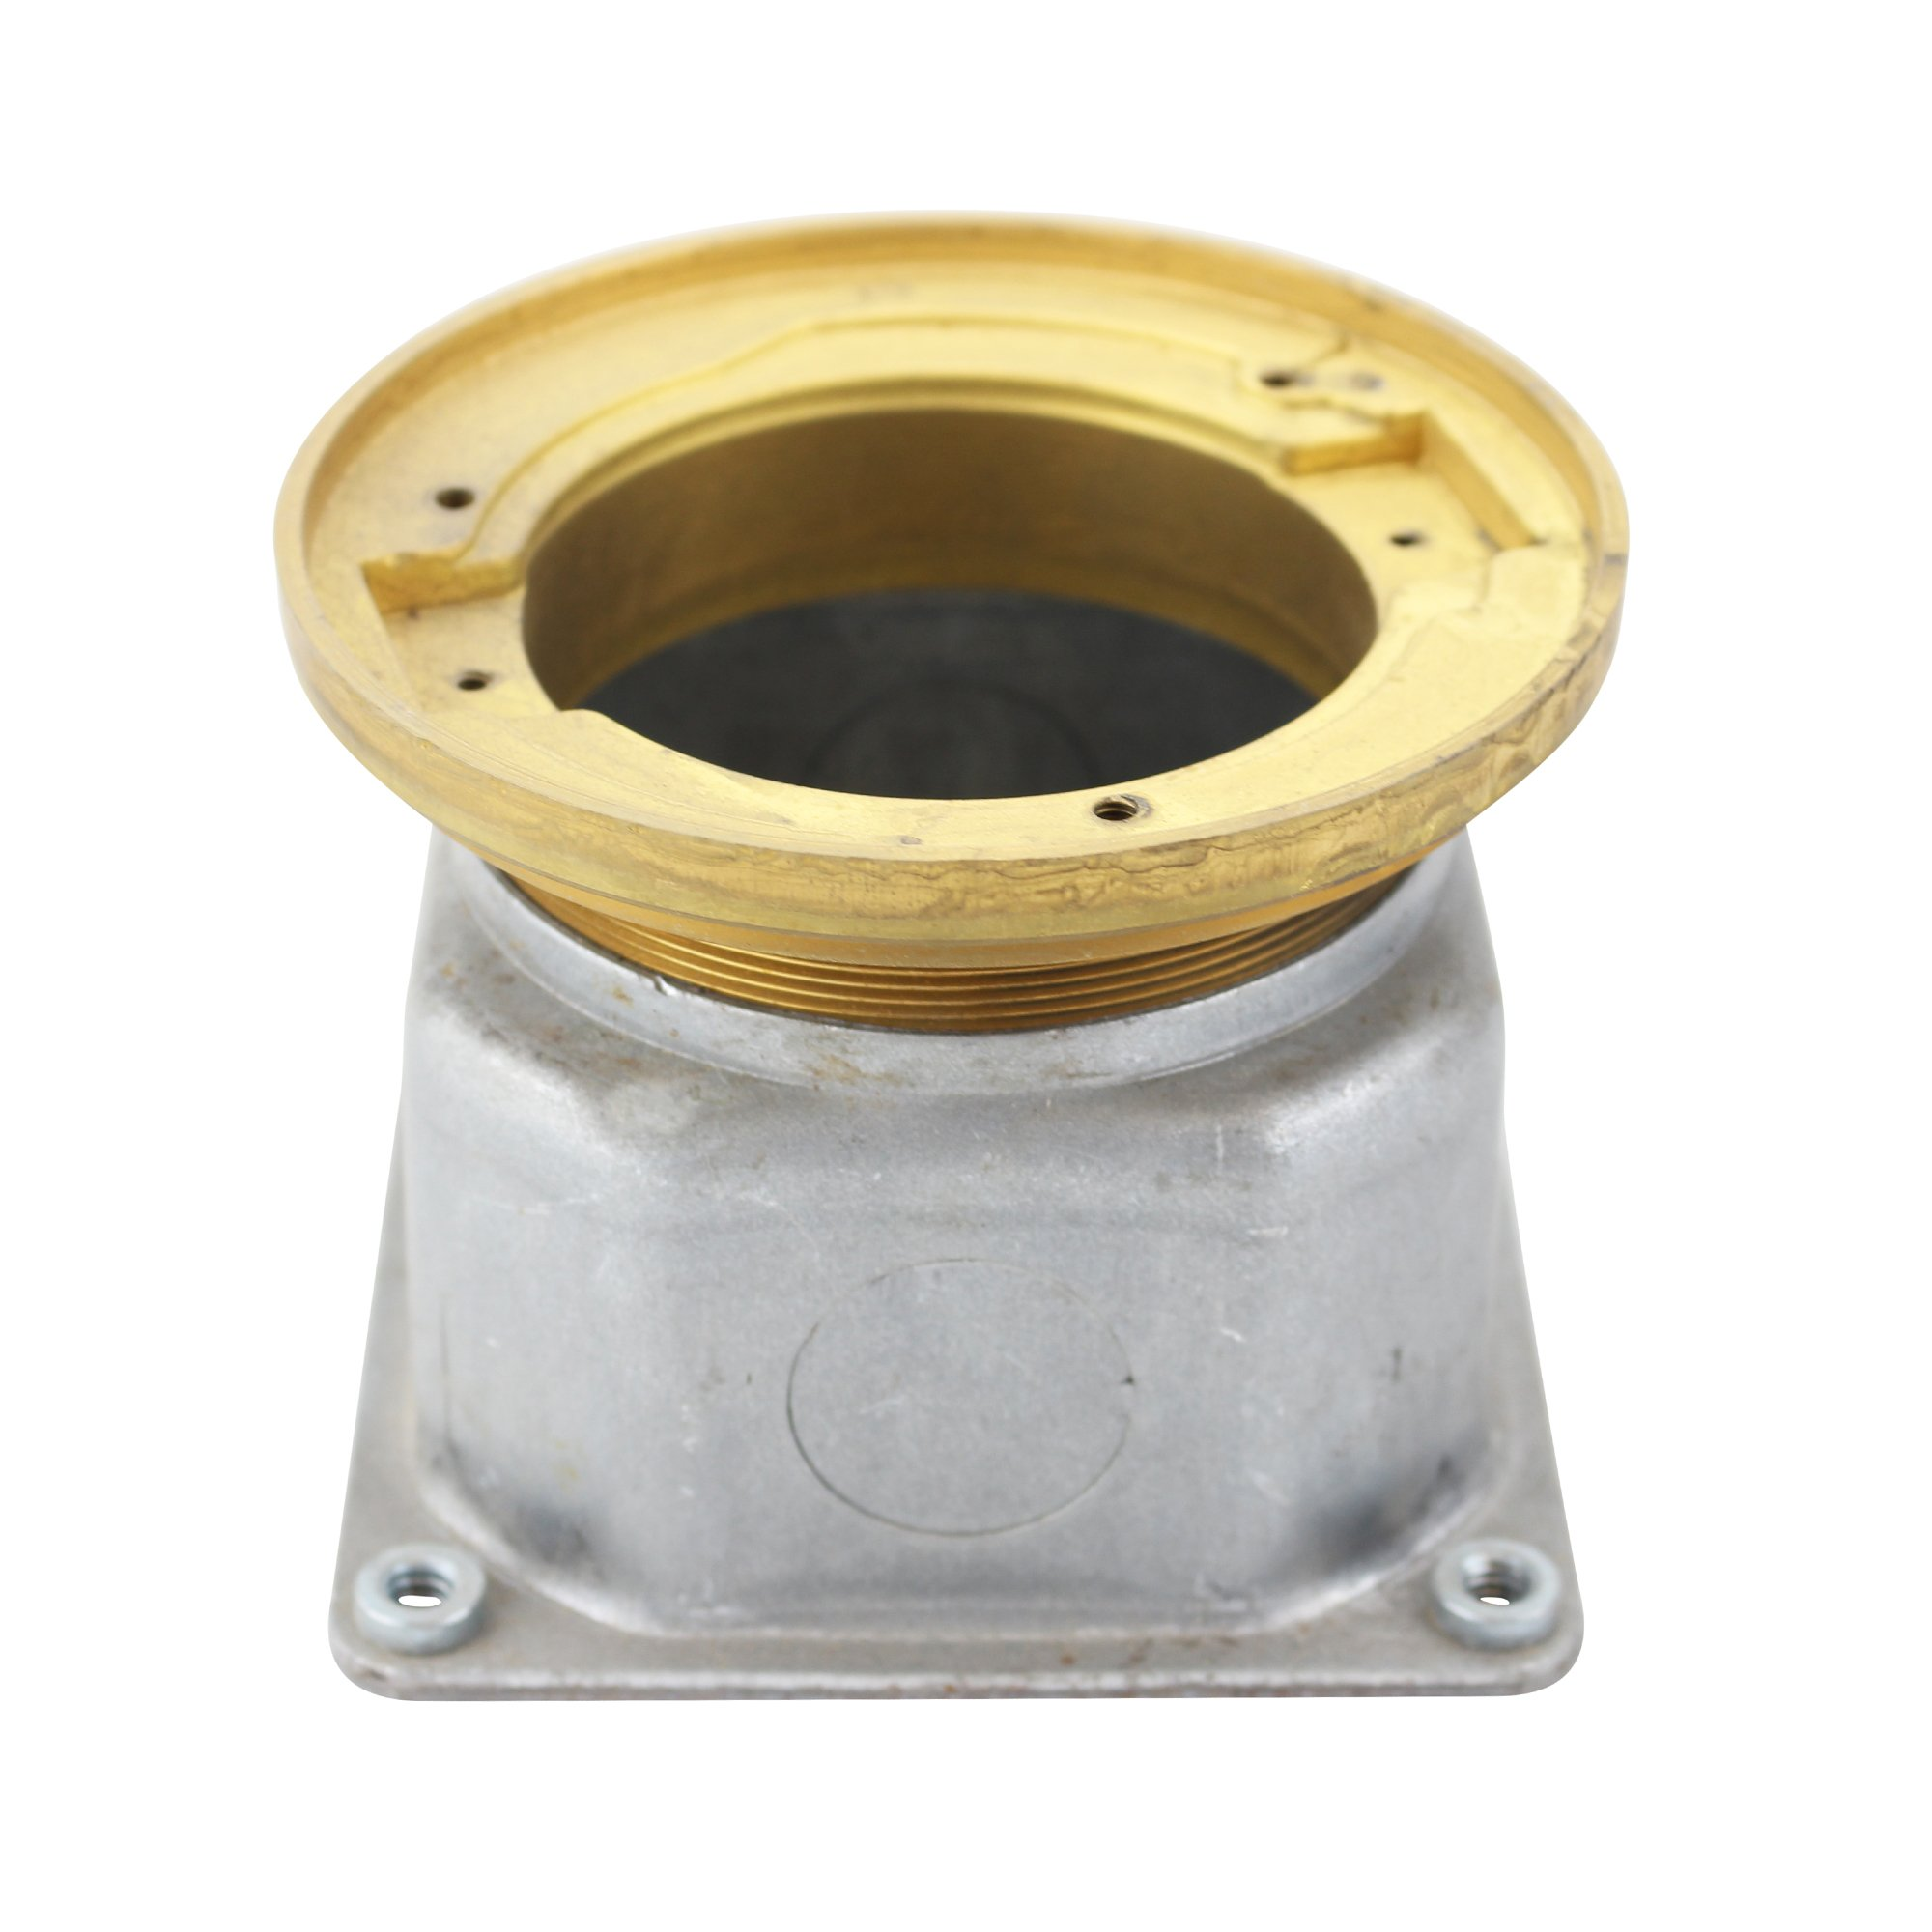 Hubbell Raco 5499 TRU-LEVEL Semi-Adjustable Floor Box, Brass, 4-2/16'' Flange